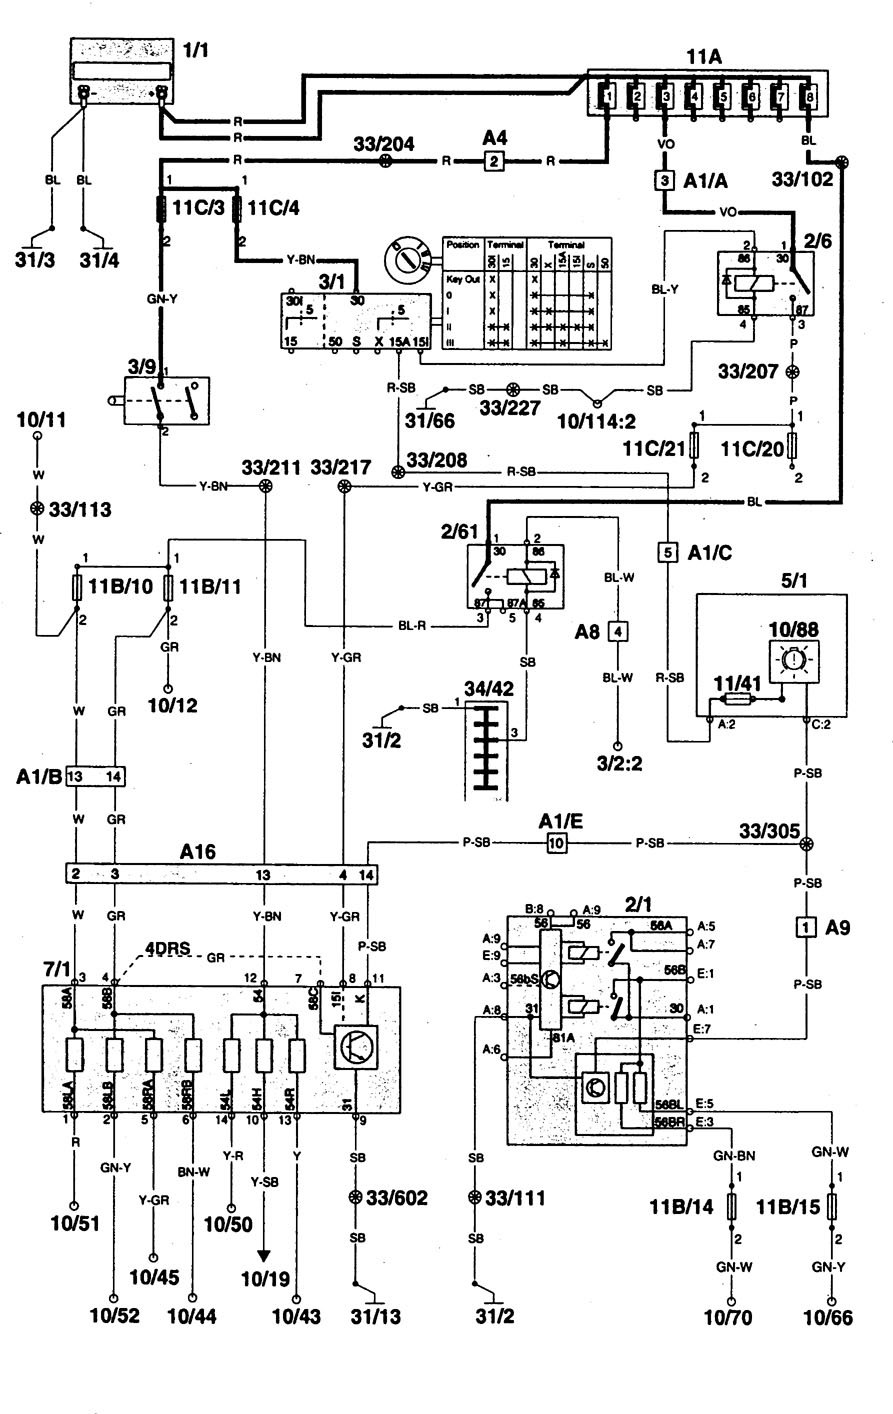 Volvo 960 Wiring Diagram 1995 - Wiring Diagram Filter pose-outlet -  pose-outlet.cosmoristrutturazioni.it | Volvo 960 Wiring Diagram 1995 |  | Cos.Mo. S.r.l.